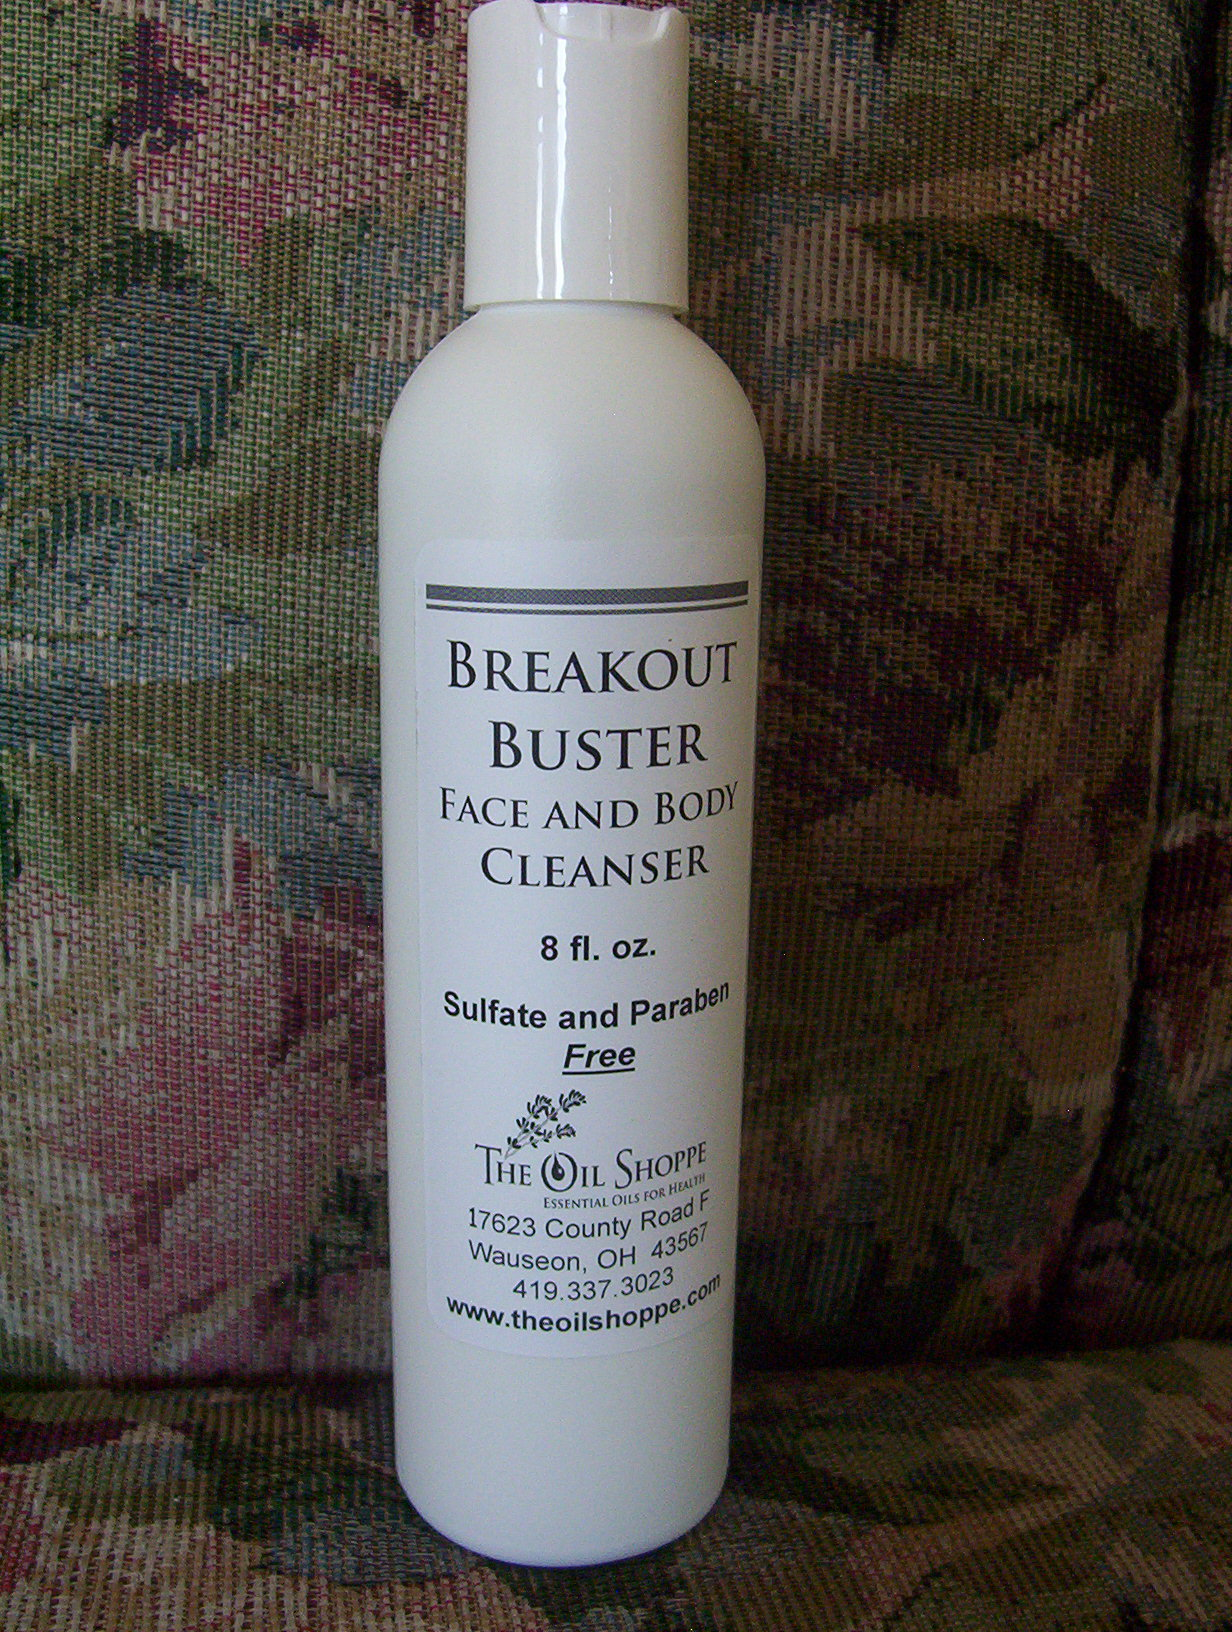 Cleanser, Breakout Buster Face and Body Cleanser